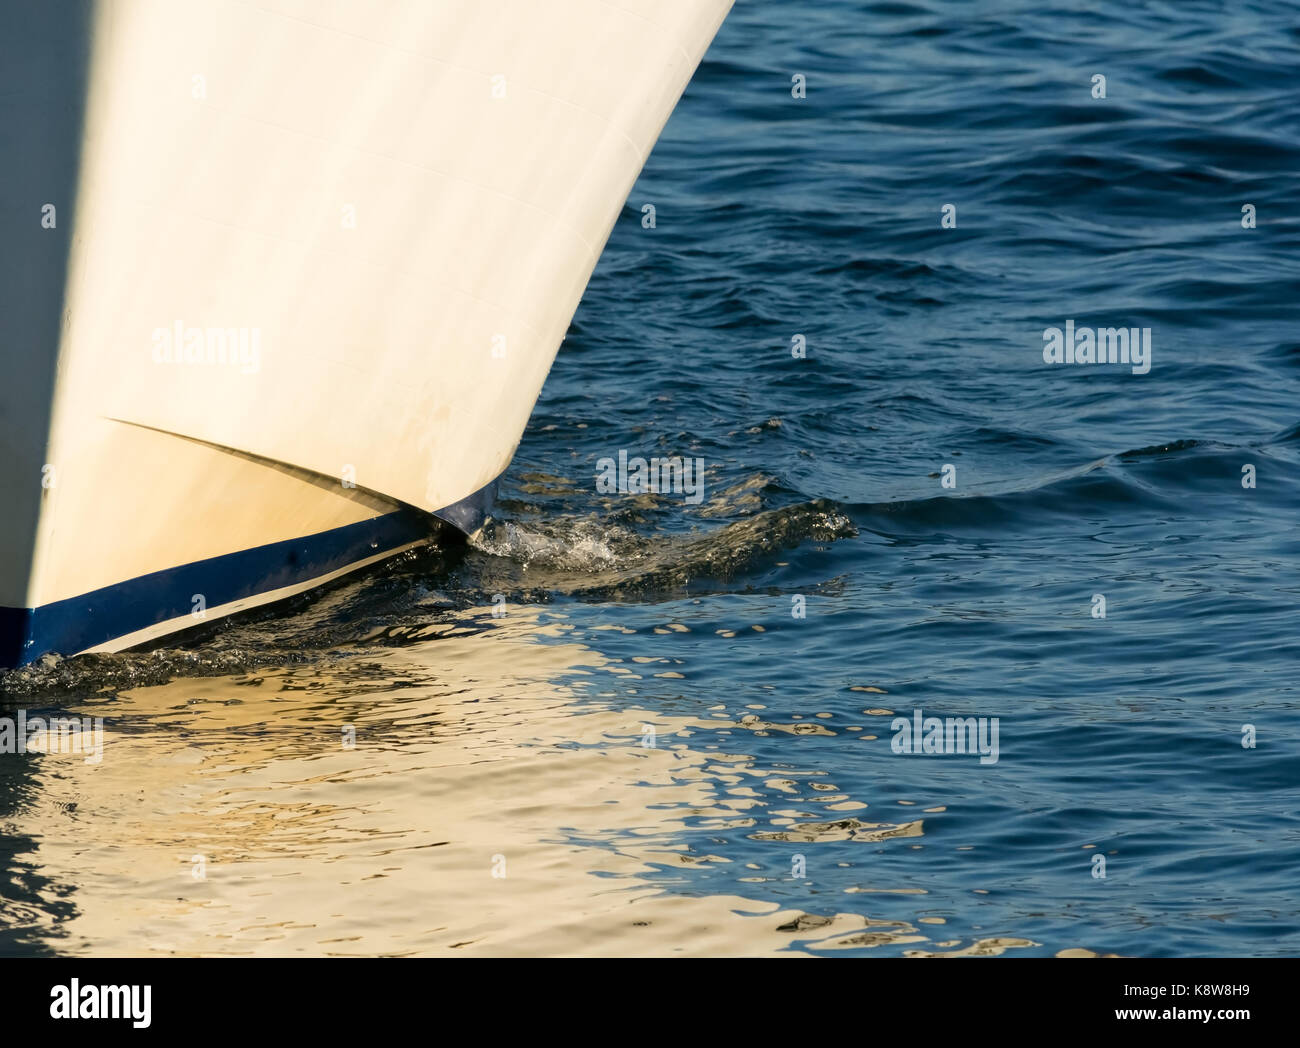 The hull of a white boat with a blue stripe cuts slowly through the water with  the white reflecting of the myriad - Stock Image